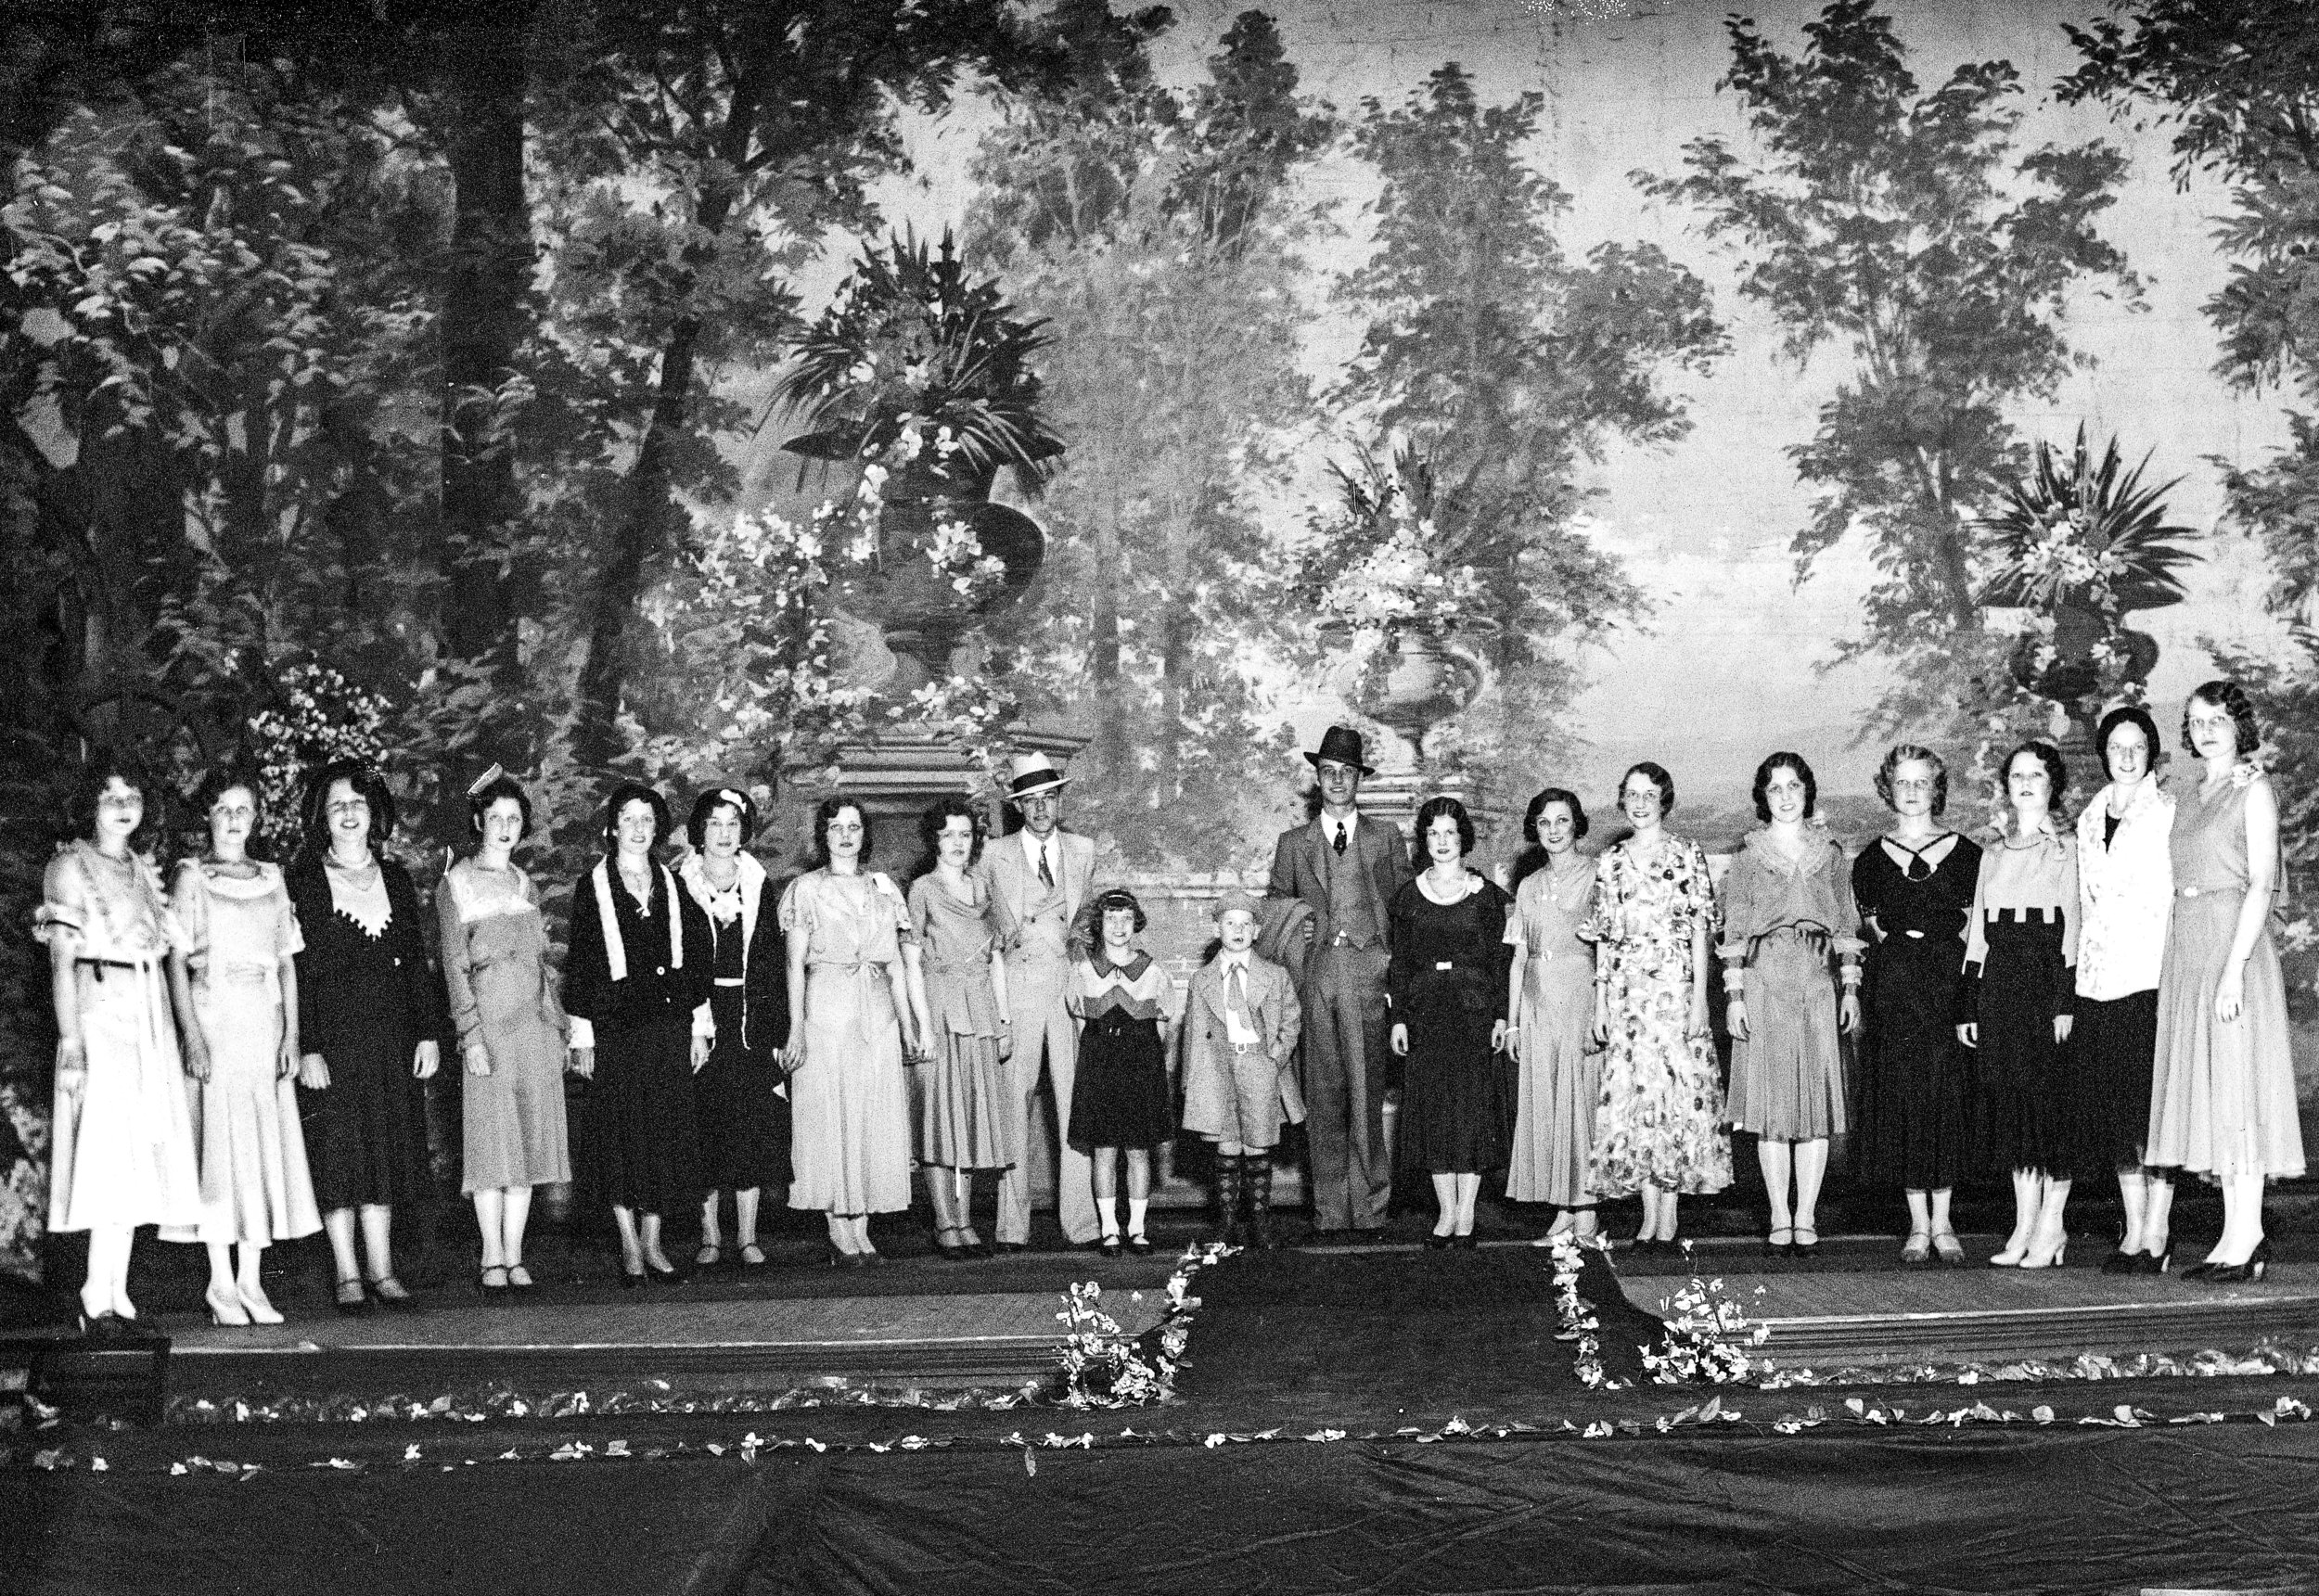 Easter Fashion Revue at Majestic Theater, pub. ISJ 3/20/31, pg 24. Illinois State Journal glass plate negative/Sangamon Valley Collection at Lincoln Library. All Rights Reserved, The State Journal-Register. 